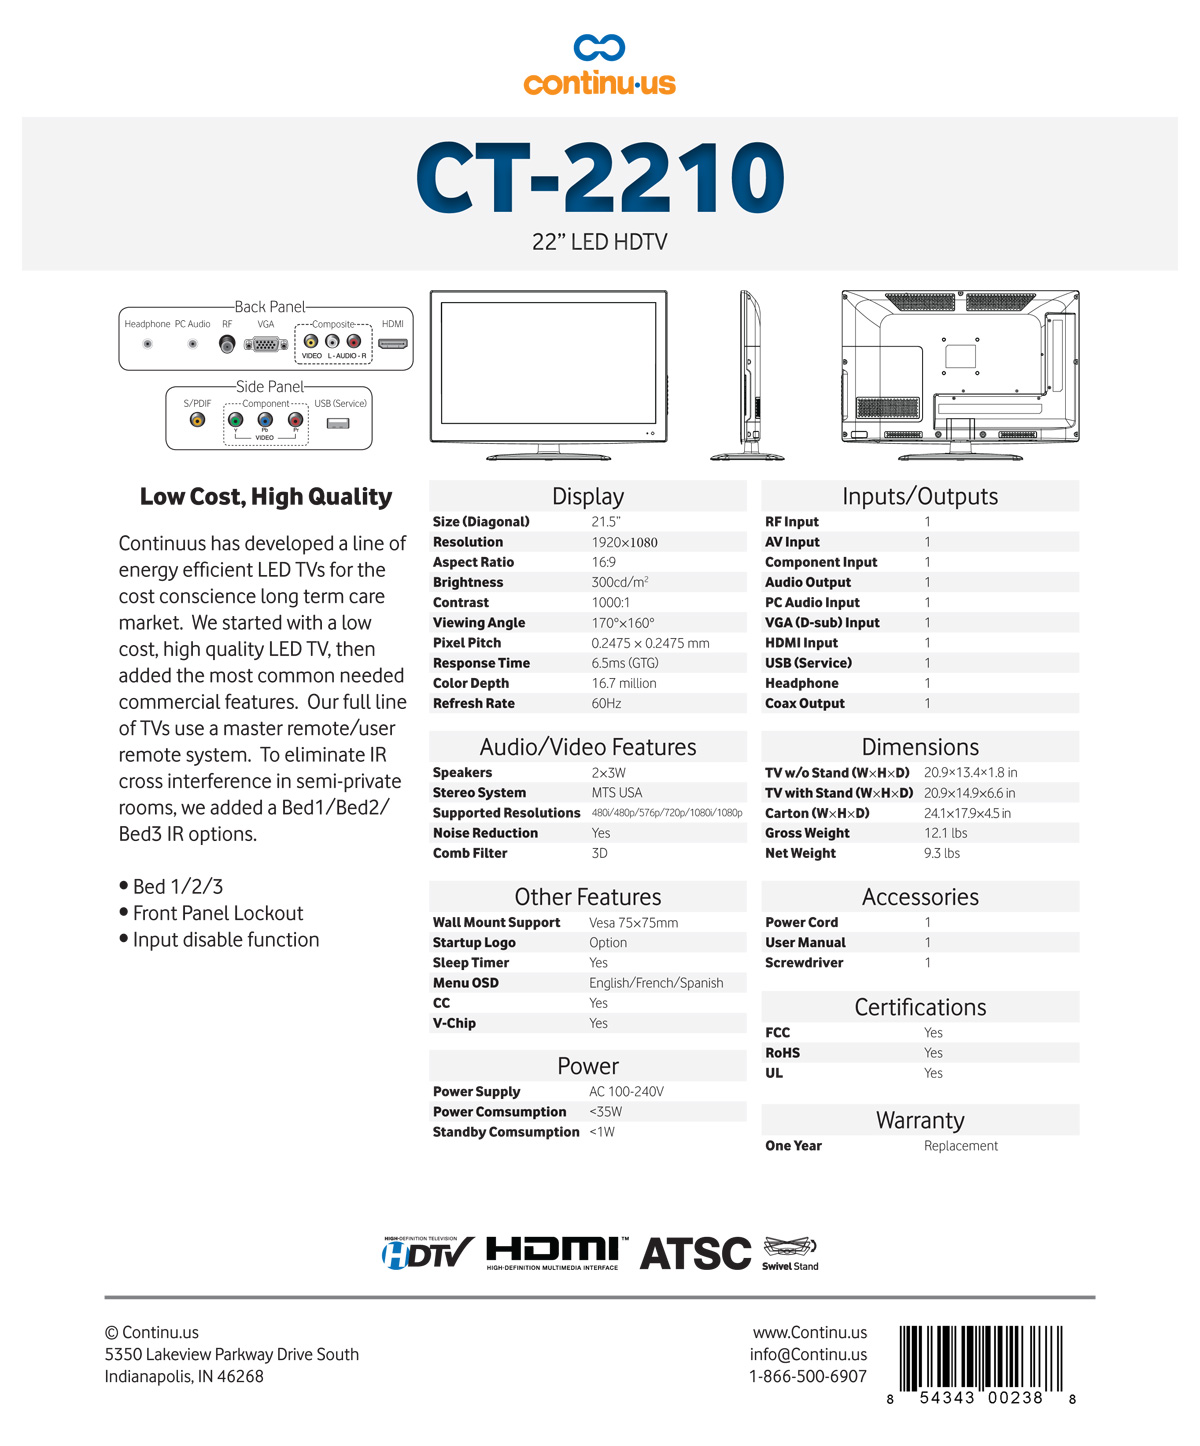 Continu.us - LED HDTV CT2210 Spec Sheet.  <a style='color: inherit !important;' TITLE='' HREF='' />Continu.us has</a>  developed a line of energy-efficient LED TV's for the conscience long-term care market. We started with a low-cost, high quality LED TV, then added the most  <a style=